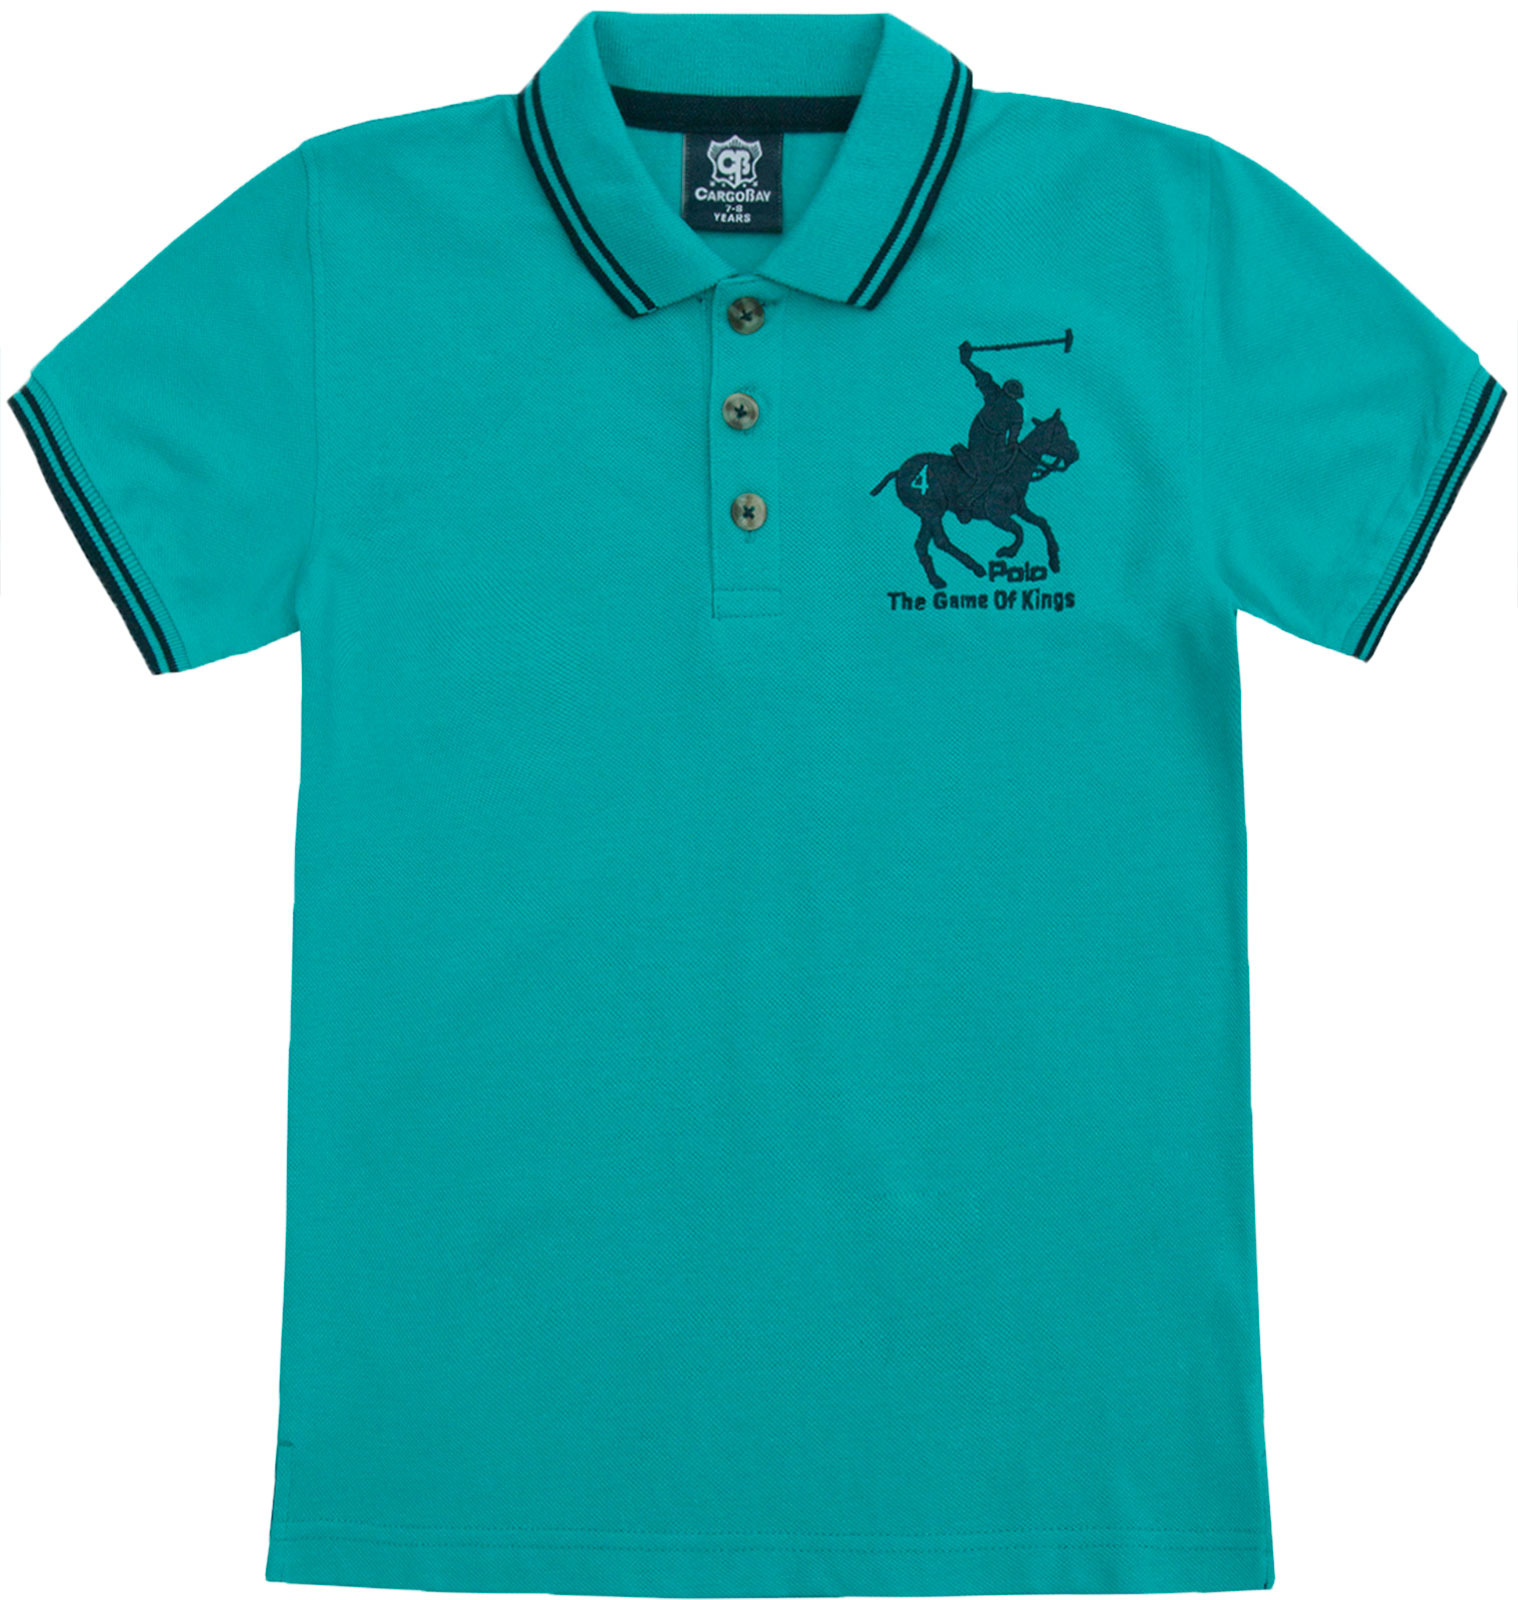 Boys-T-Shirt-Horse-Embroidery-Polo-Cotton-Top-Age-2-3-4-5-6-7-8-9-10-11-12-13-Yr thumbnail 17